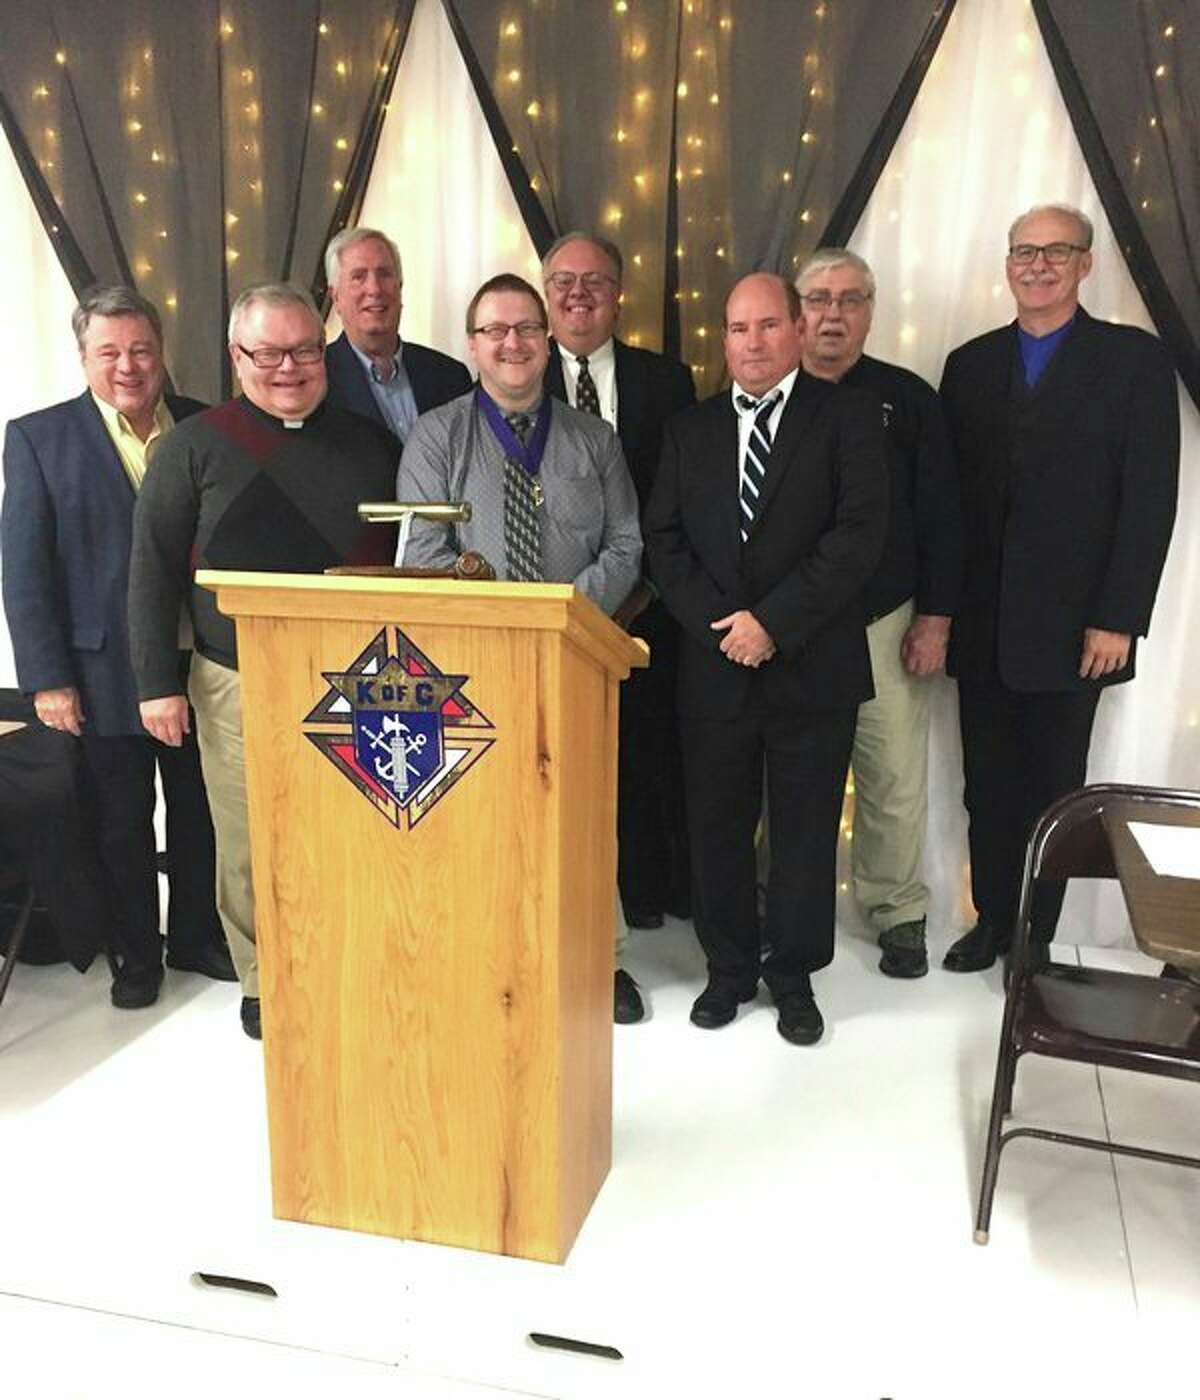 Pictured are (front row) Father T.J. Fleming, Eric Emming, K of C Grand Knight and Bill MacAlpine; (back row) Don Clark, Doug Brining, Honorable Gerald Prill, James Swartz and Deacon Jene Baughman. (Submitted Photo)